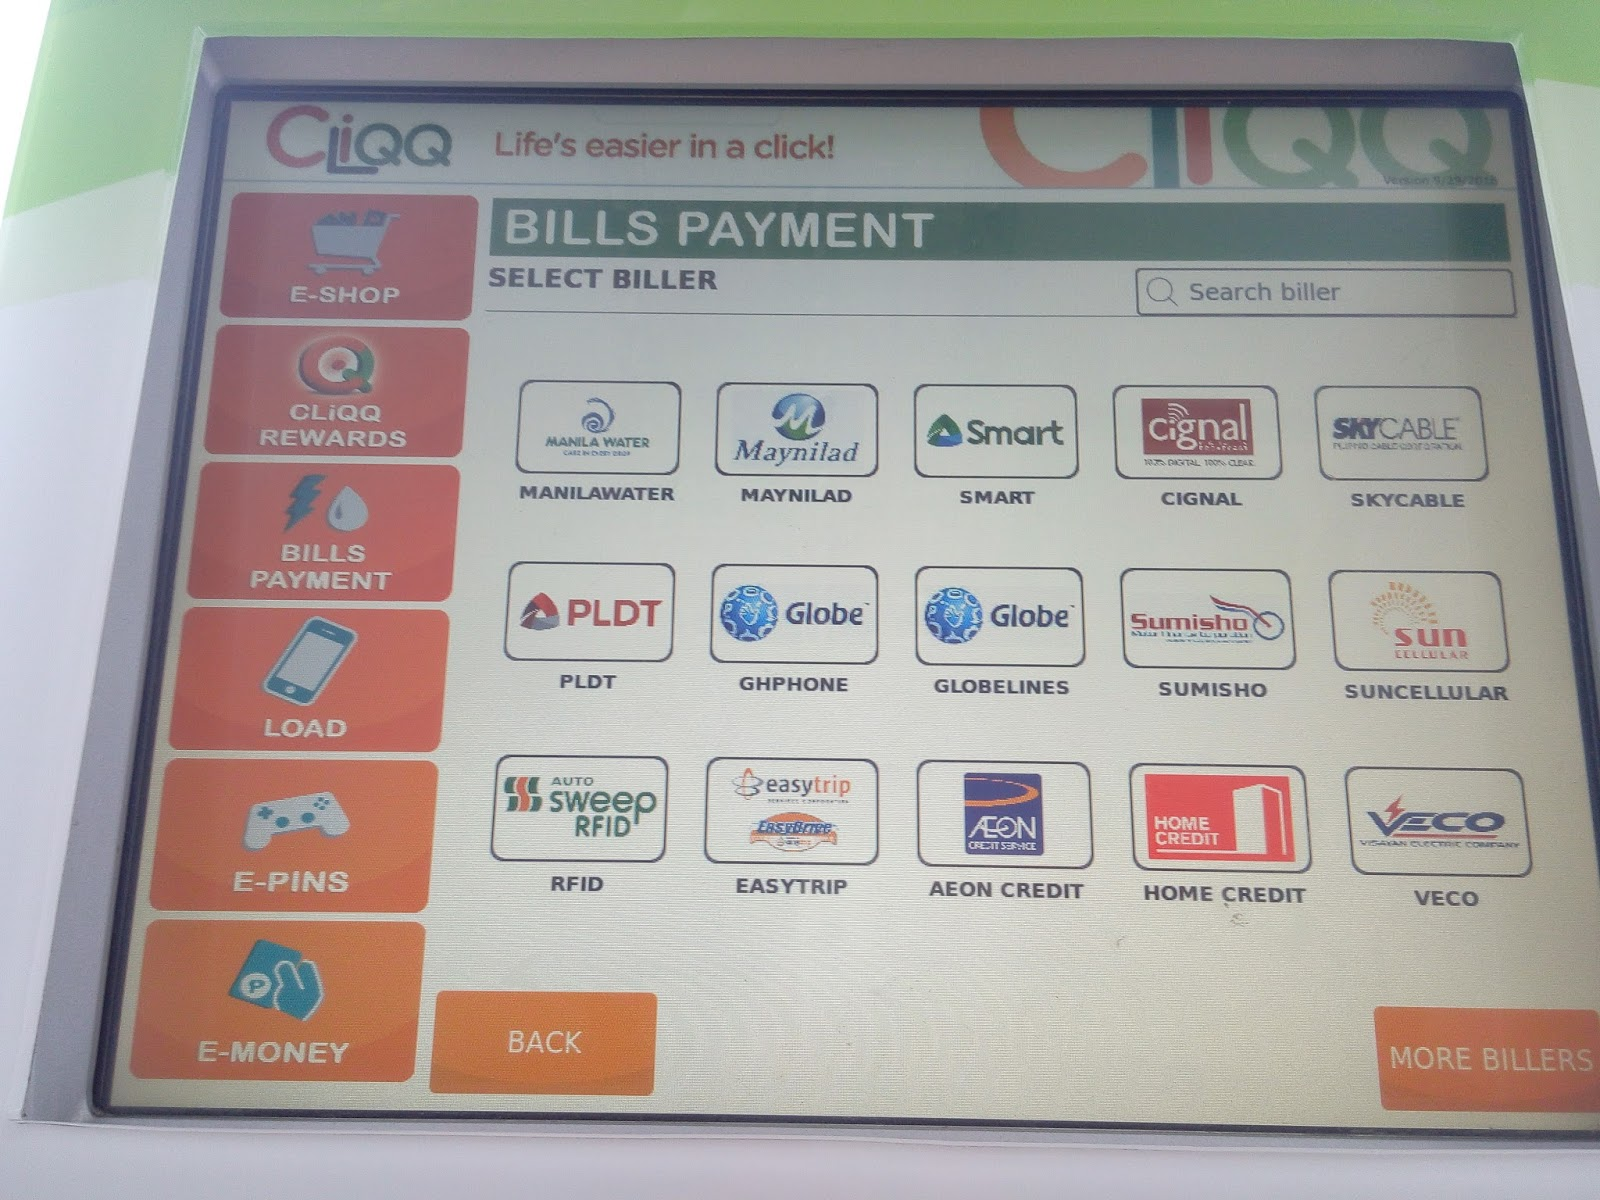 mom's reverie: Bills Payment at 7-Eleven Cliqq